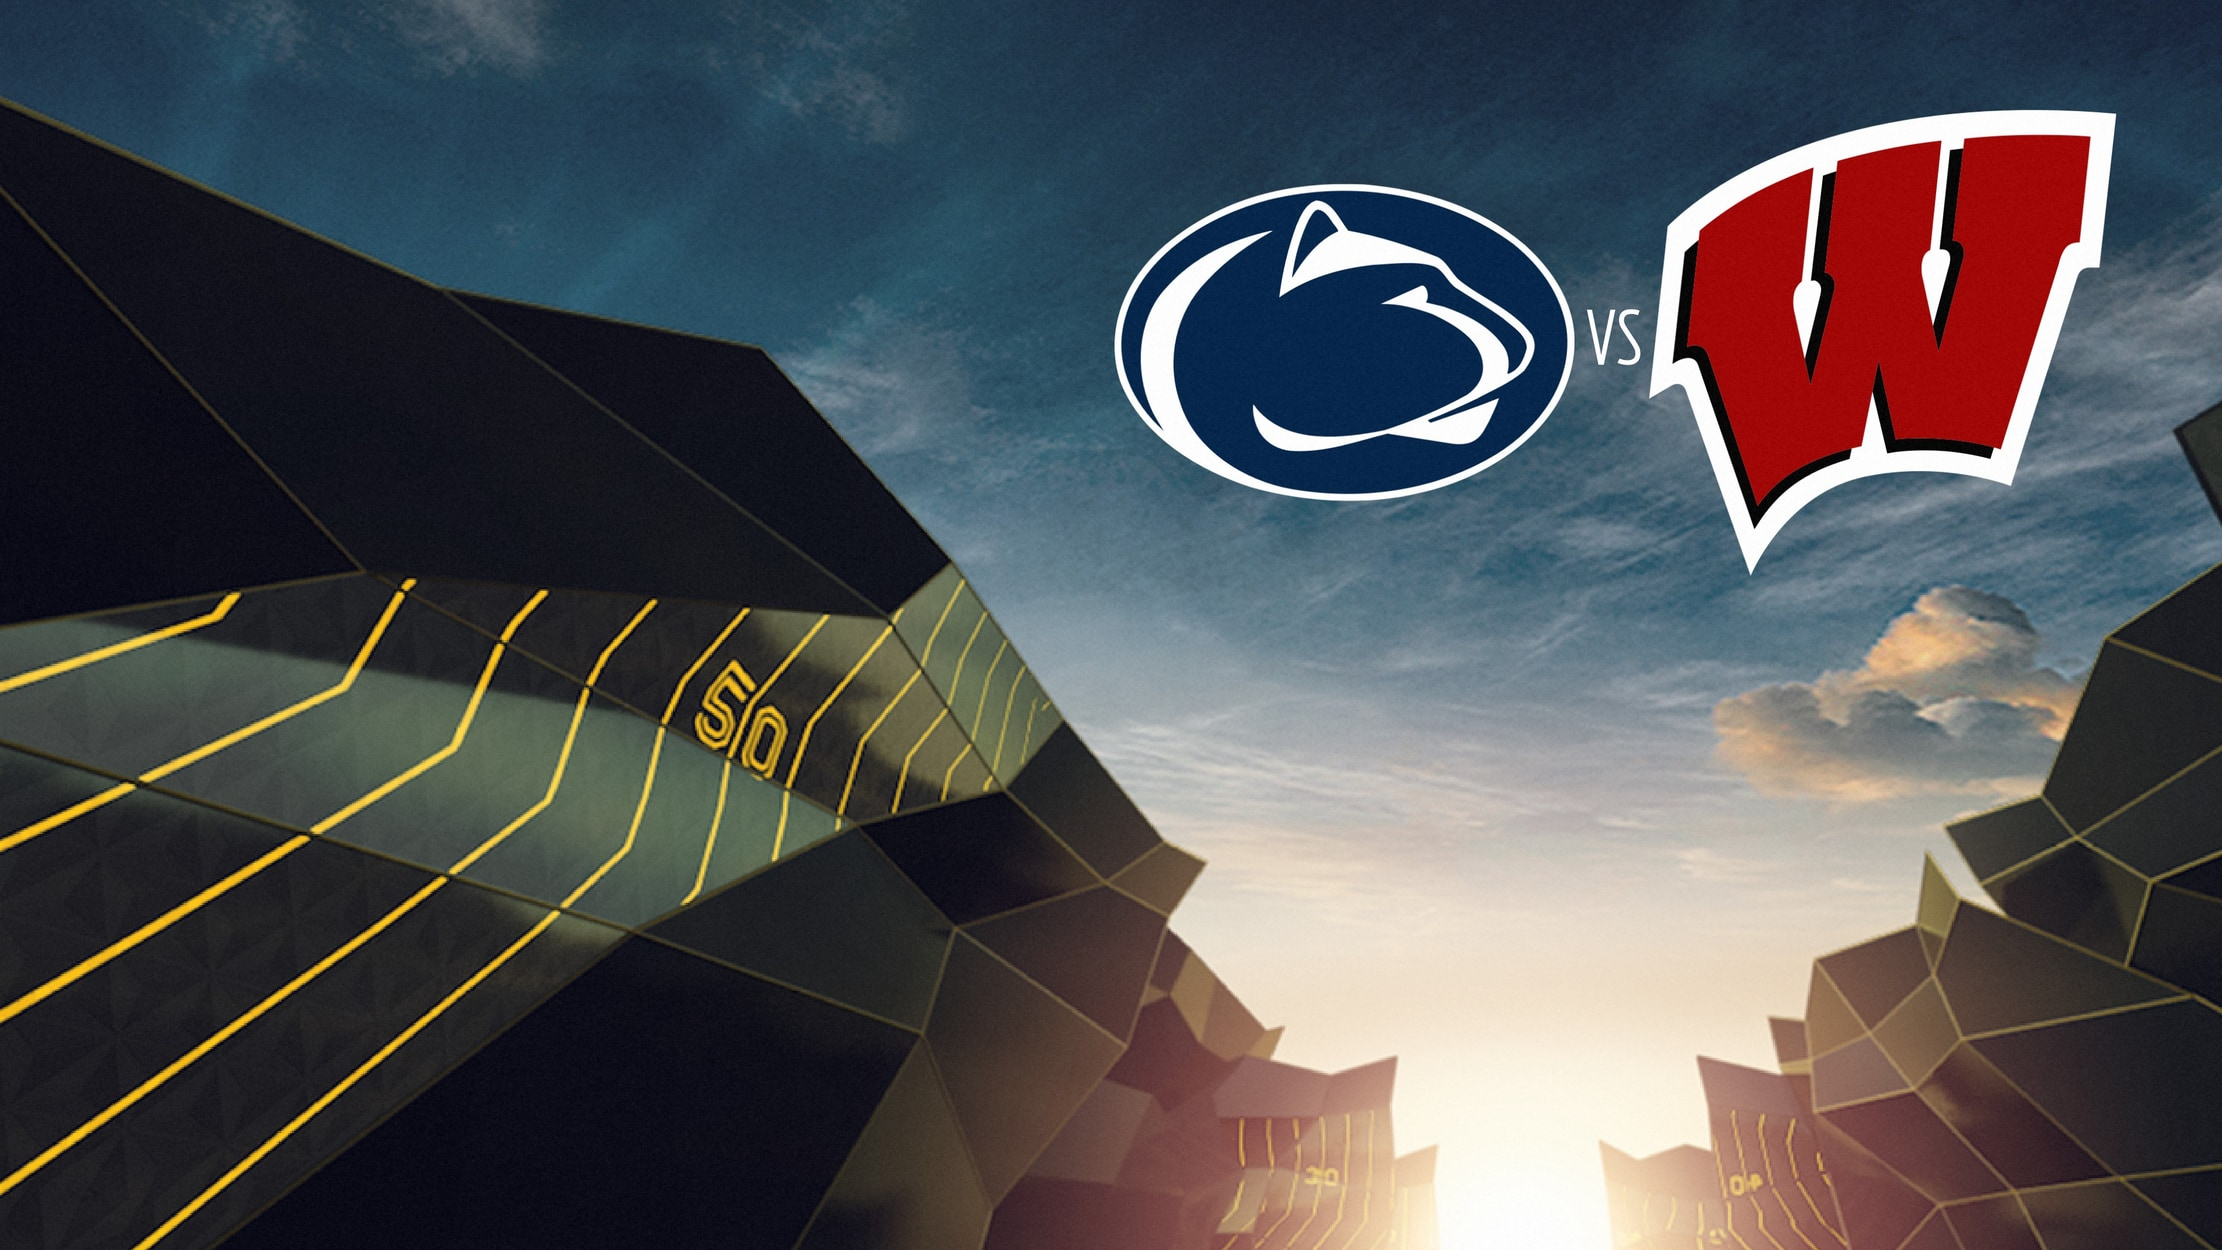 College Football - Penn State at Wisconsin seriesDetail